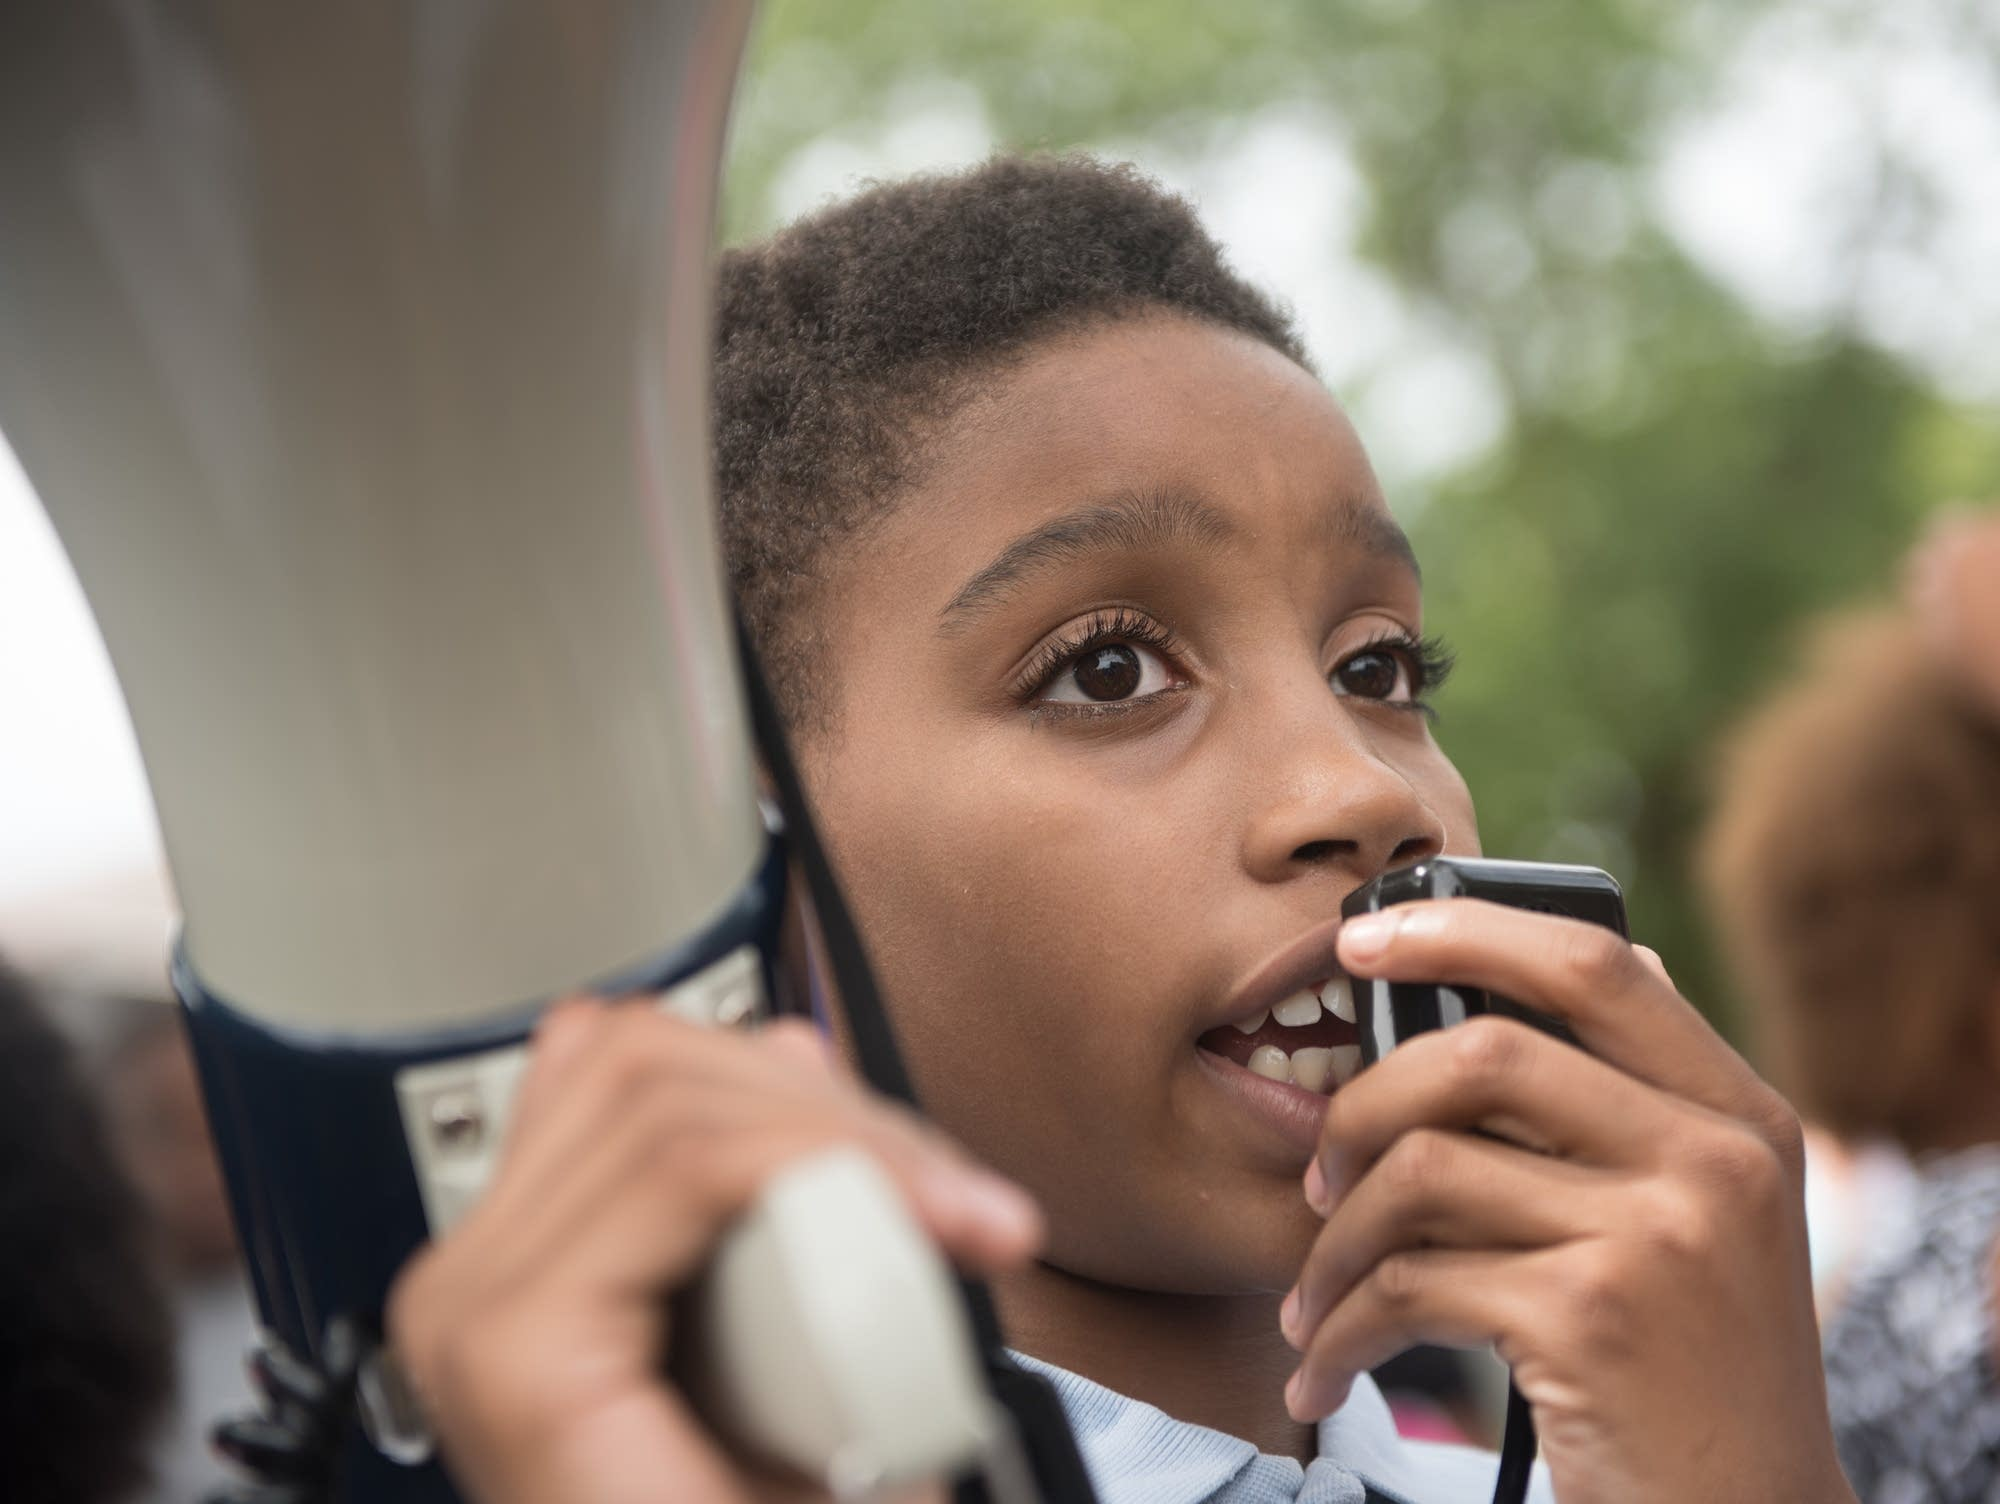 William Williams, 12, speaks on the megaphone.